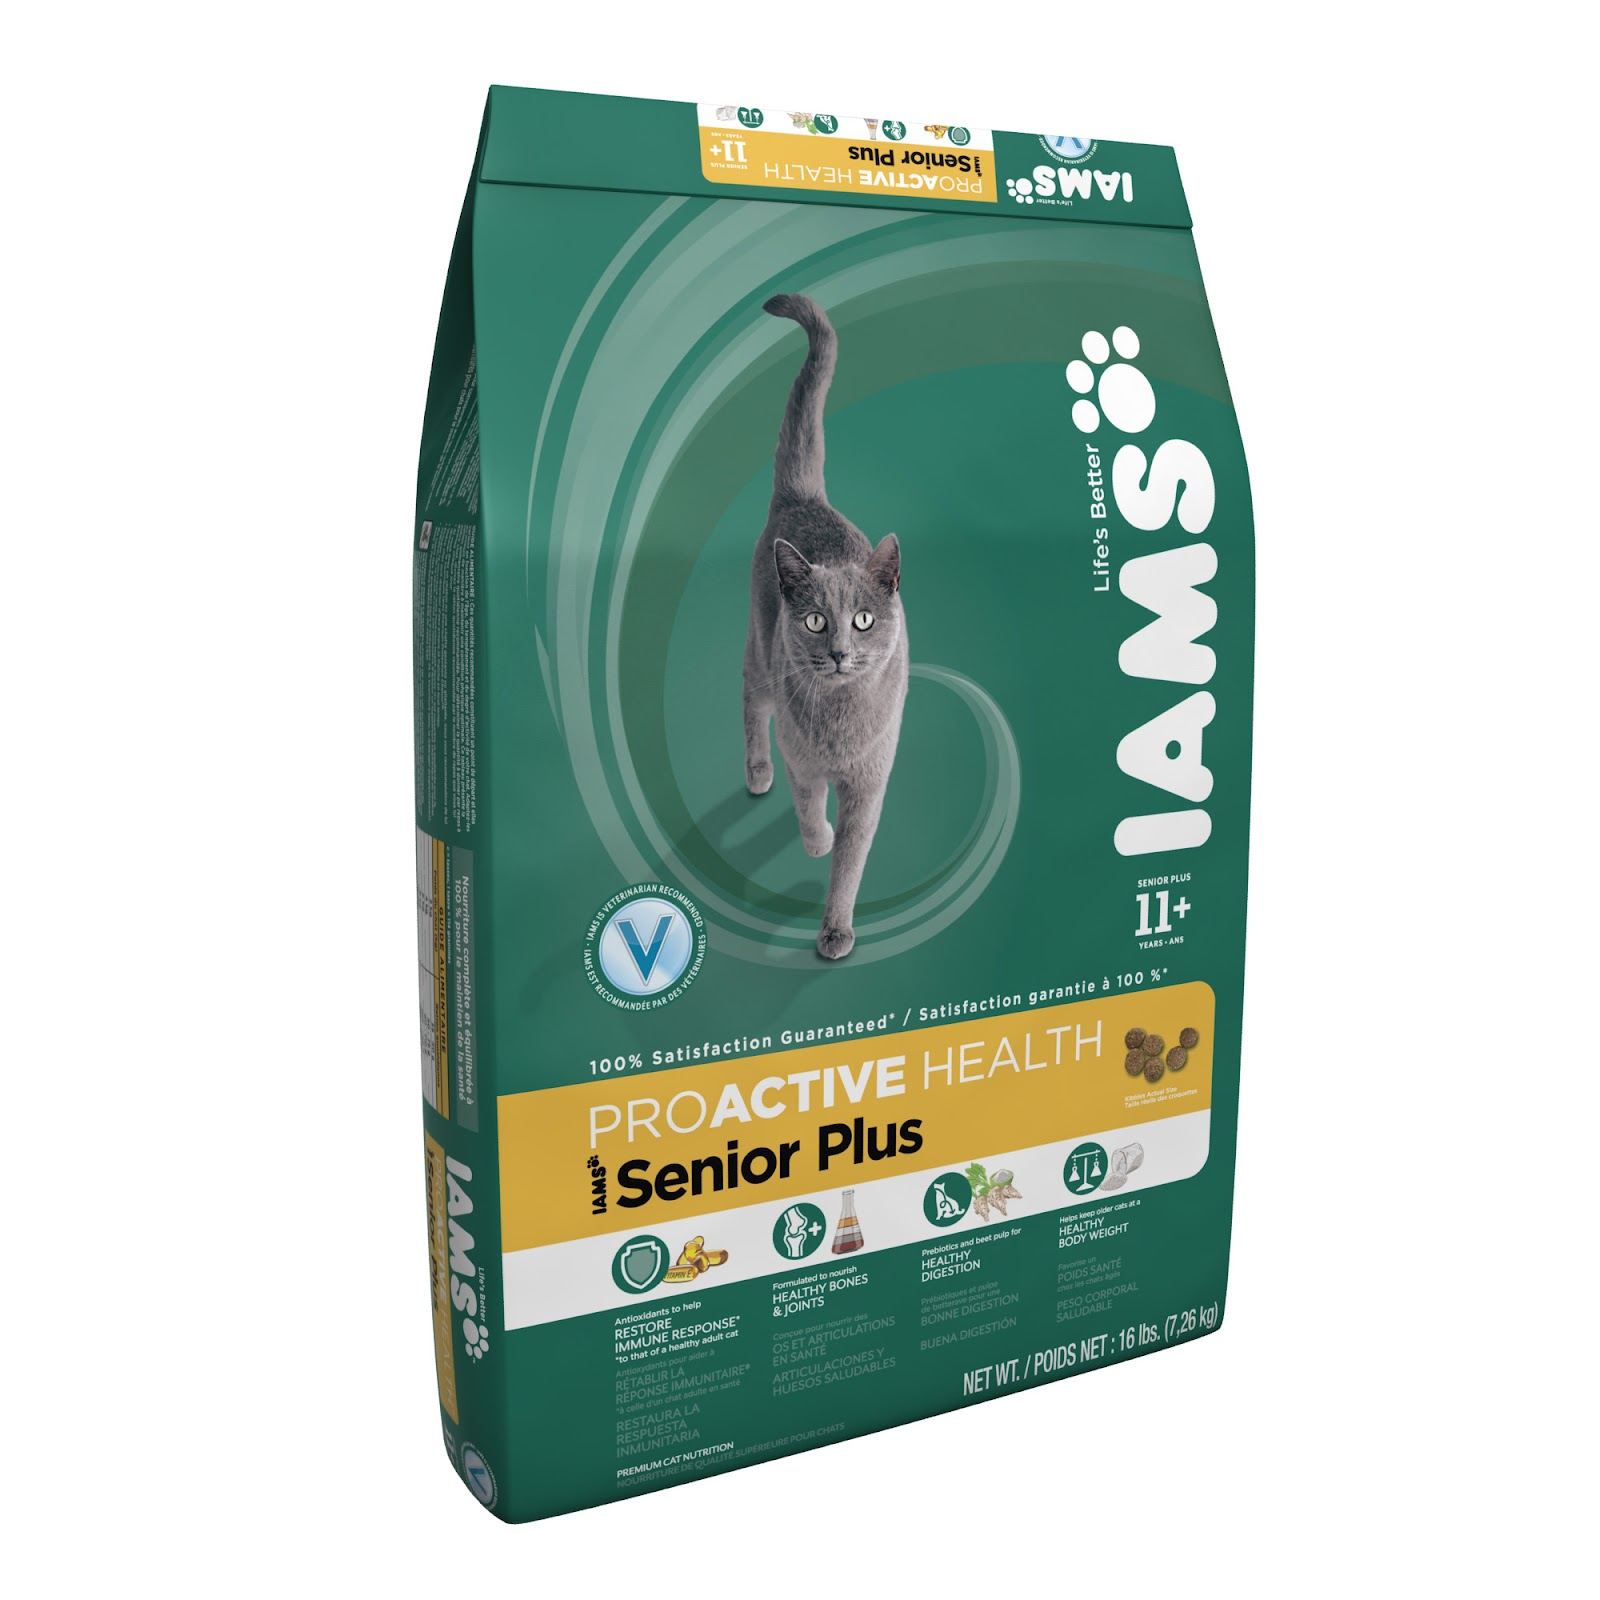 Is Iams Cat Food Really Better